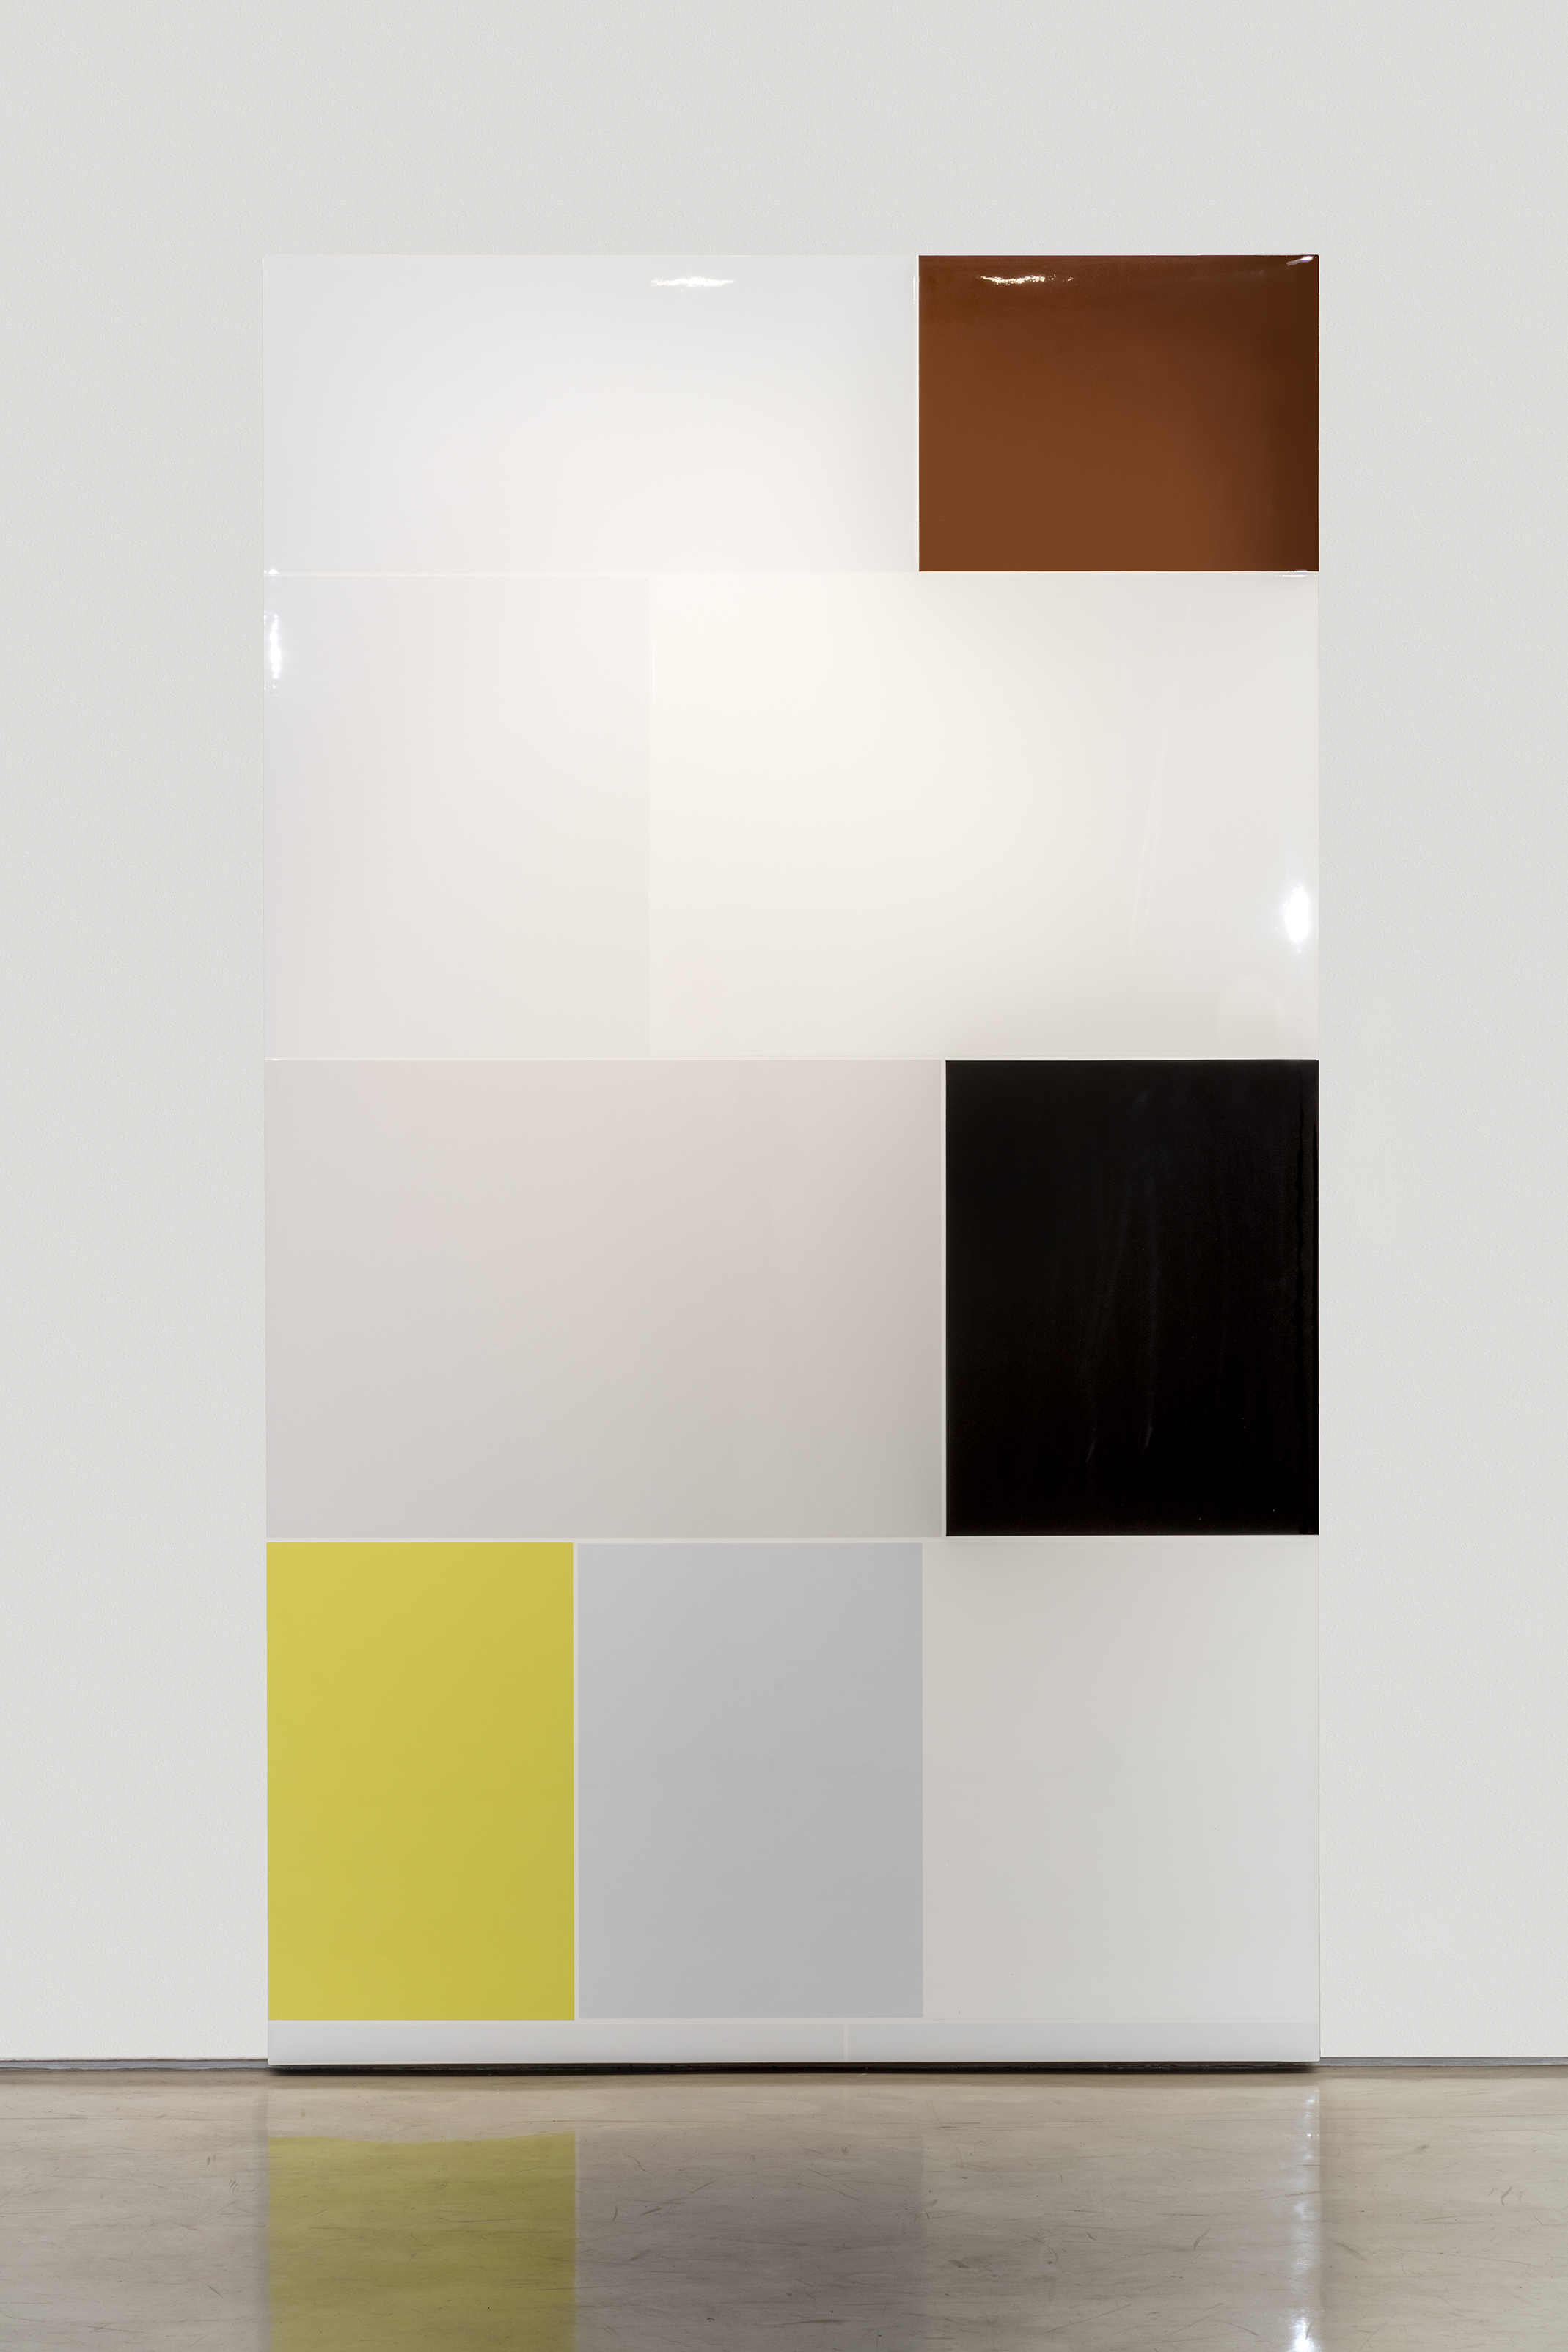 Confession, 2015Urethane on gesso on cotton canvas96 x 56 inches -